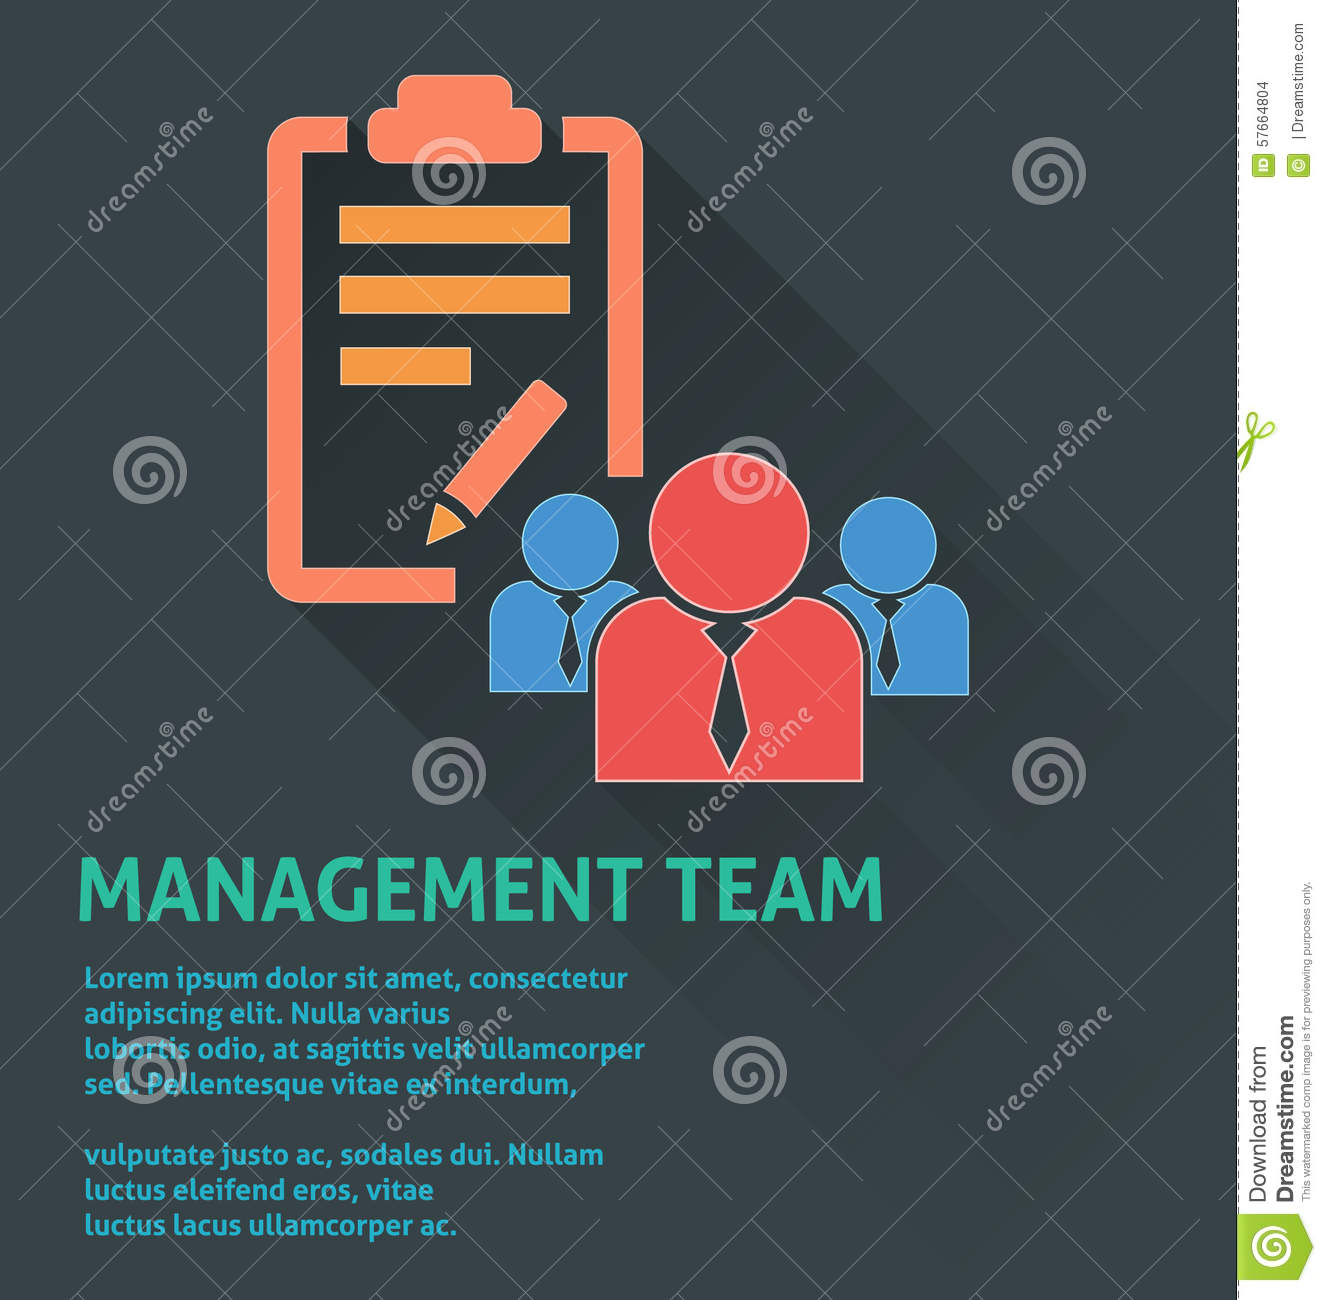 Project Team Organization – Team Definition, Roles & Responsibilities, Organizational Chart